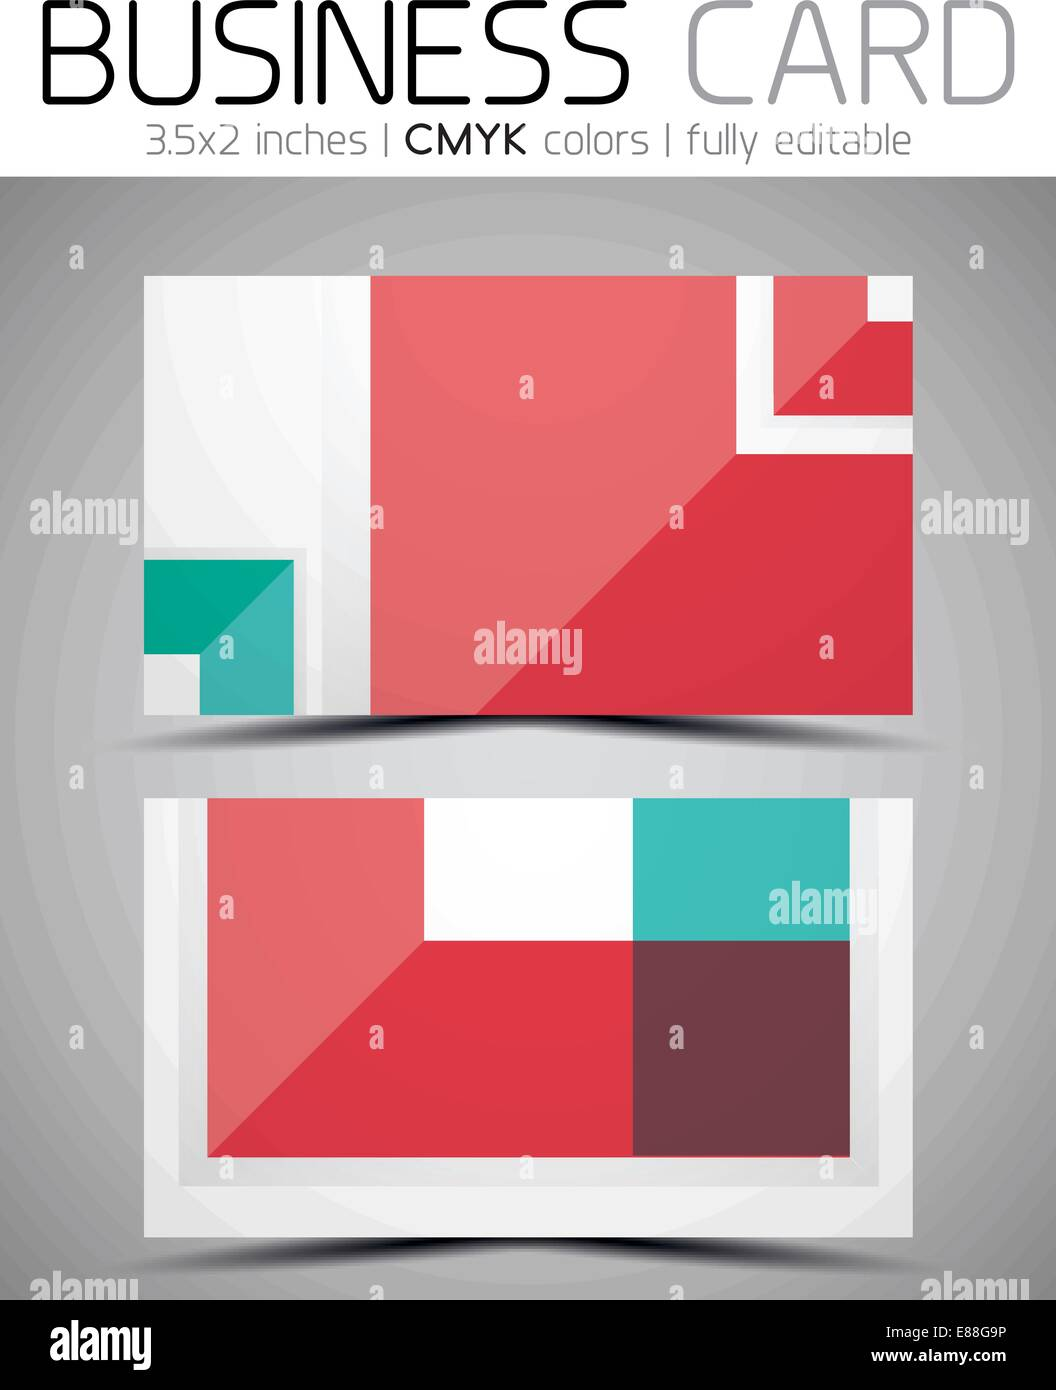 Vector business card design template - colorful geometric shapes ...